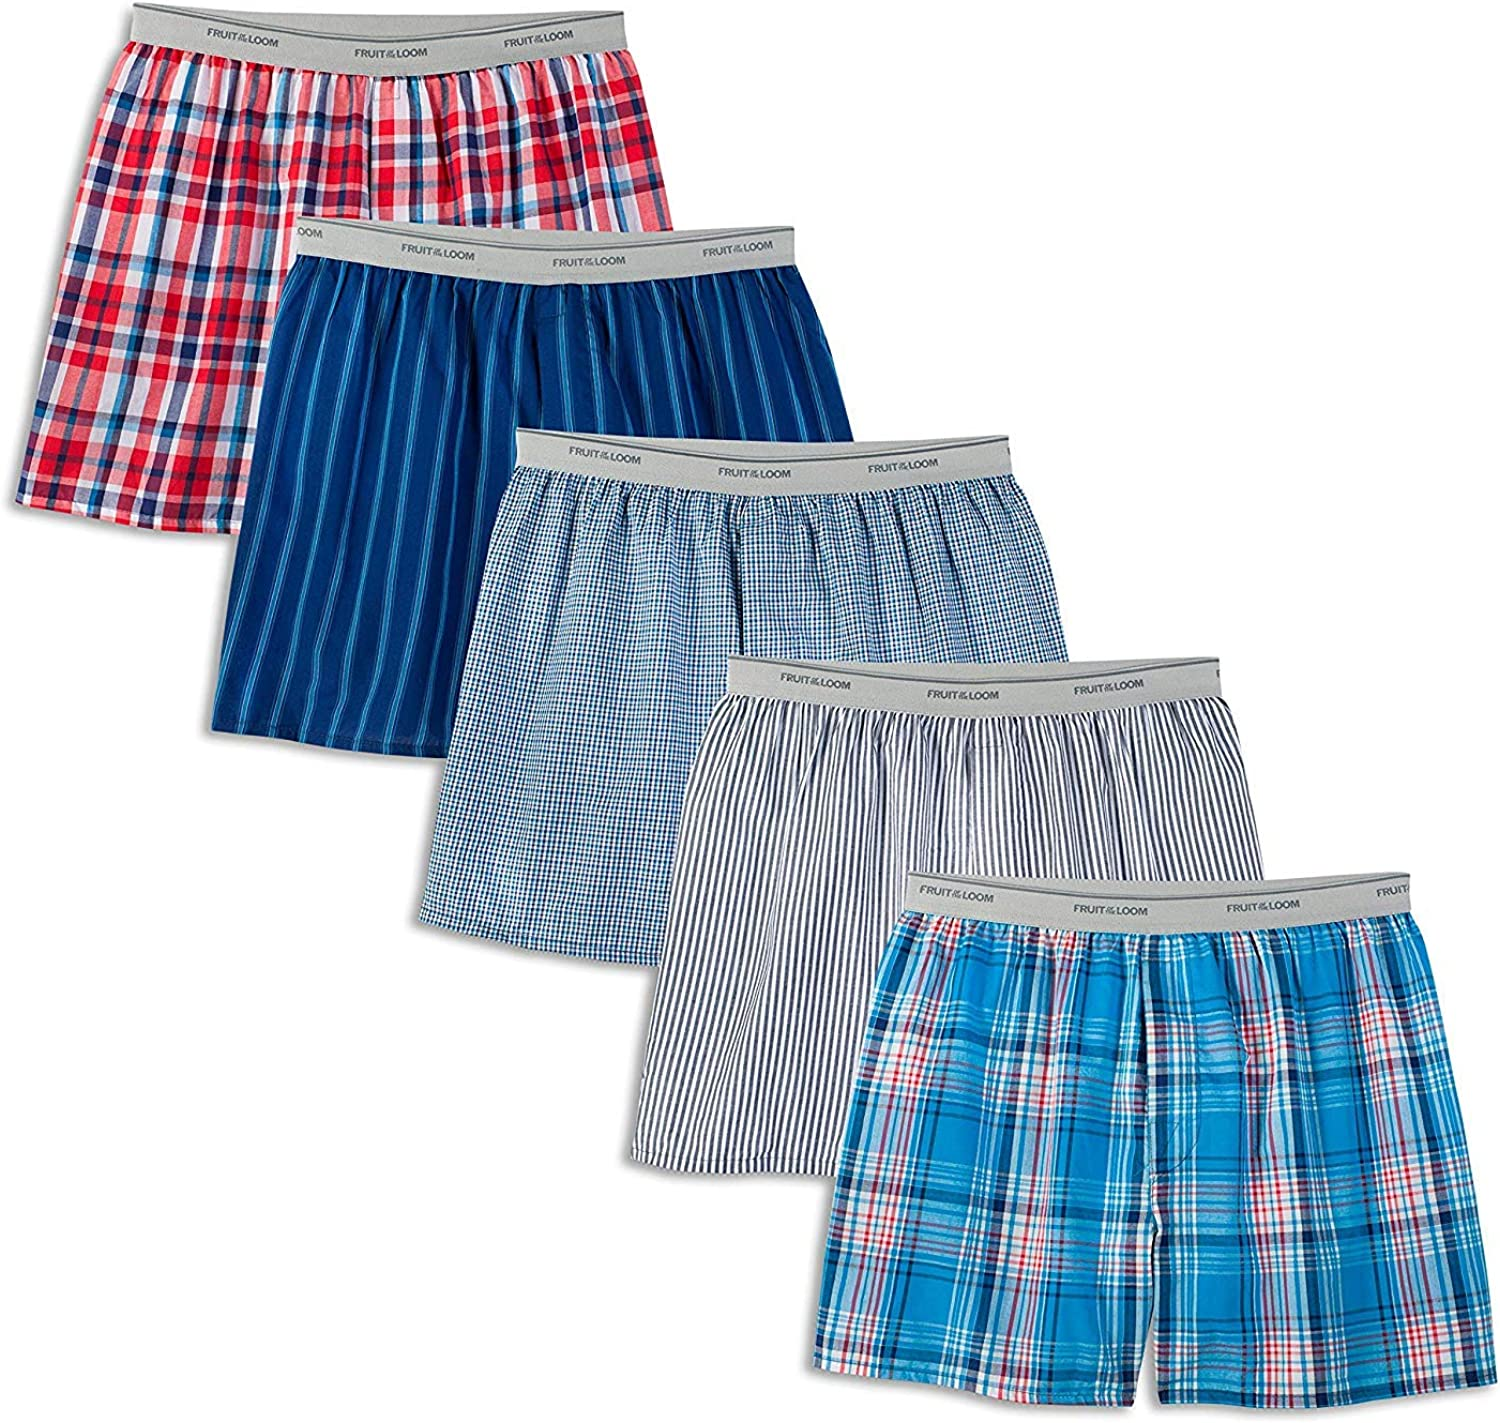 Fruit of the Loom Men's Woven Tartan and Plaid Boxer Multipack